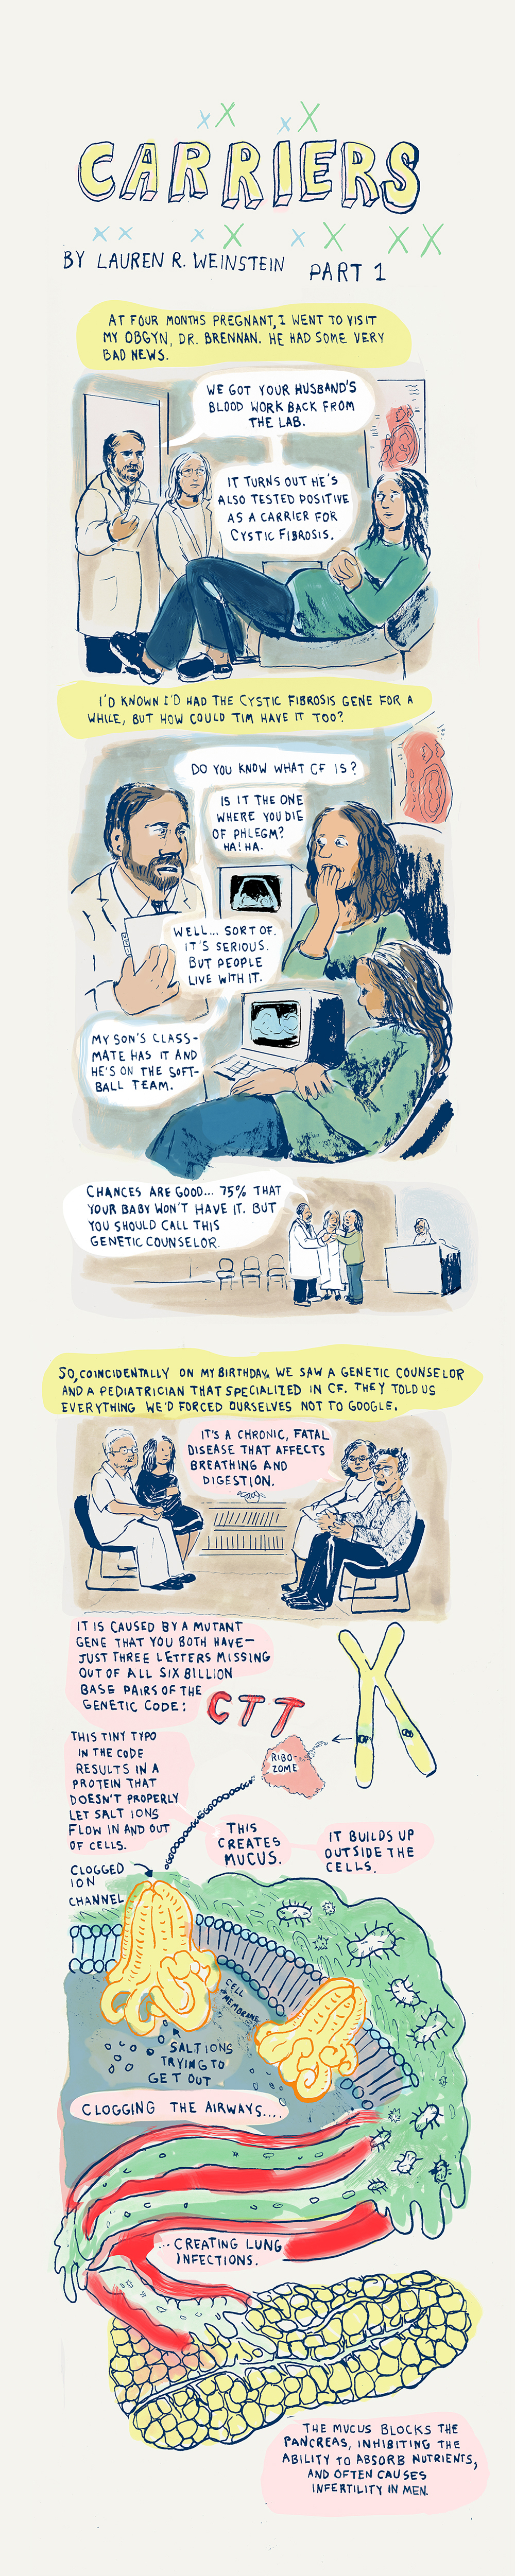 Carriers: A Webcomic on Health, Luck, and Life